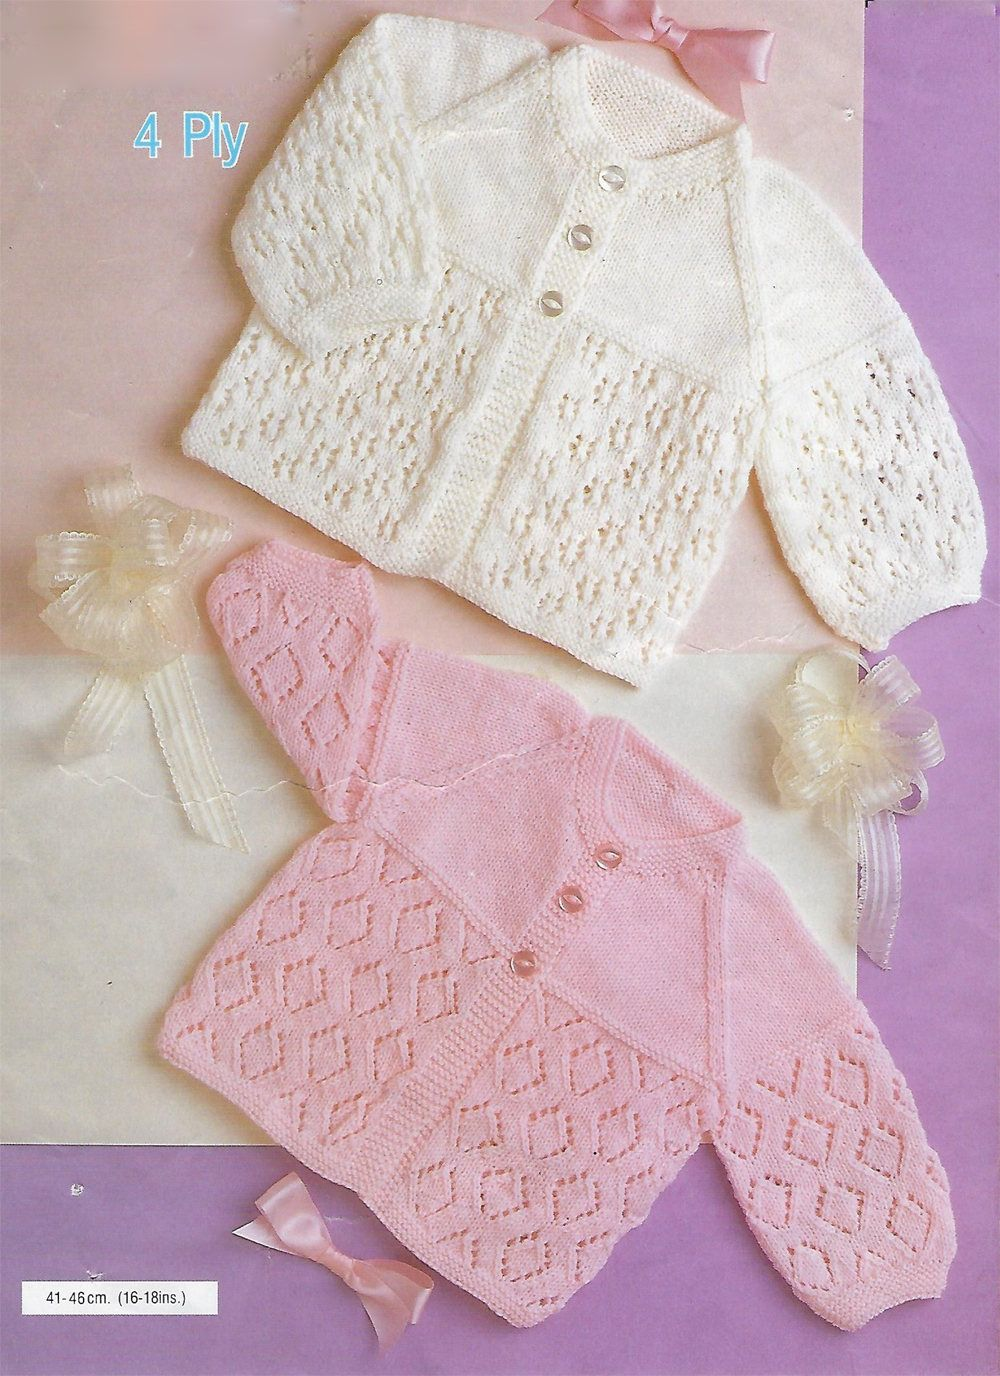 f2de159a6 PDF Instant Digital Download baby 4 ply matinee jackets knitting ...